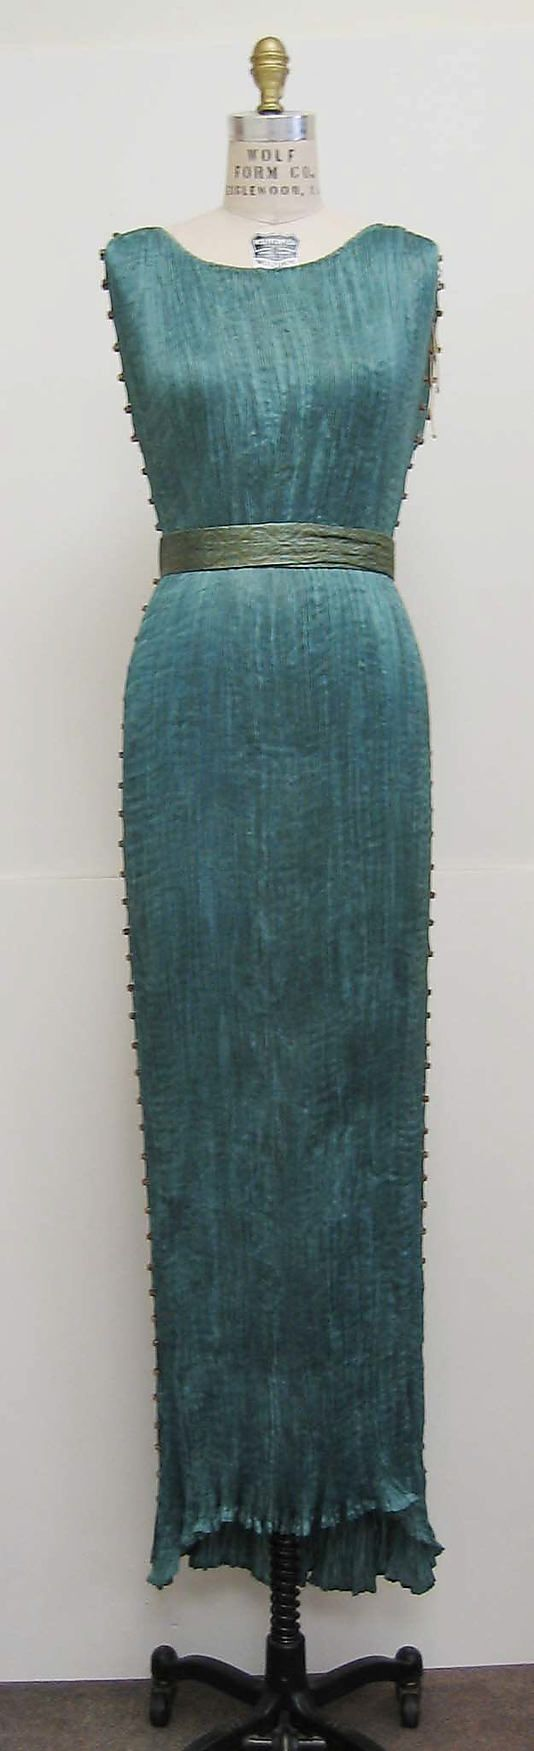 Fortuny Dress - c. 1932 - Fortuny  (Italian, founded 1906) - Design by Mariano Fortuny (Spanish, 1871-1949) - Silk, glass